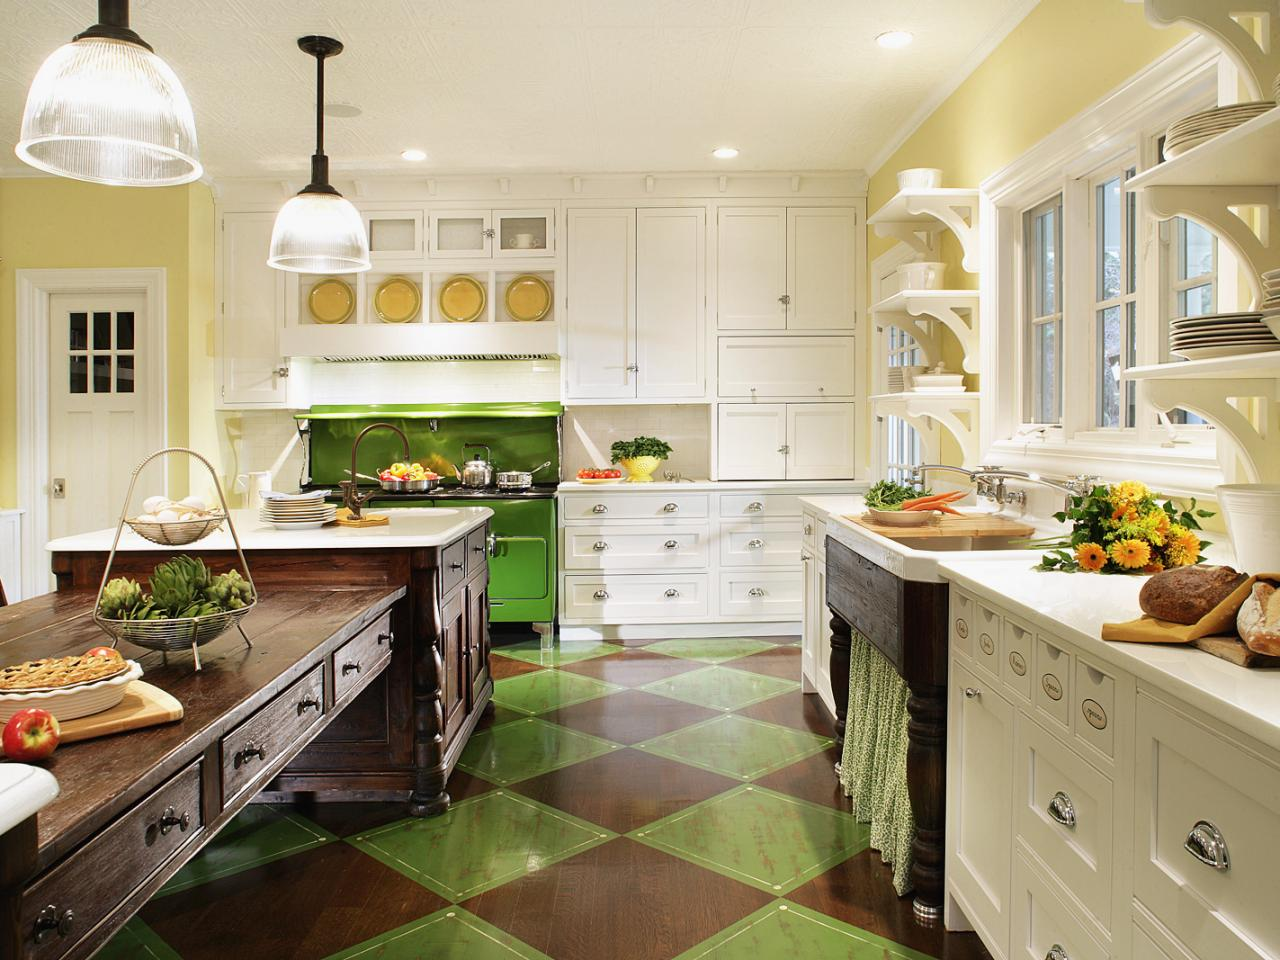 Green Kitchen Remodeling Ideas on green kitchen remodel, for small kitchens kitchen ideas, green landscaping ideas, green designer kitchens, green kitchen colors, kitchen cabinets ideas, kitchen paint ideas, green kitchen themes, green kitchen flooring, green country kitchens, organized kitchen ideas, green carpet ideas, kitchen renovations ideas, country kitchen ideas, green rustic kitchen, ikea kitchen ideas, green painted kitchens, kitchen design ideas, kitchen color theme ideas, kitchen island ideas,